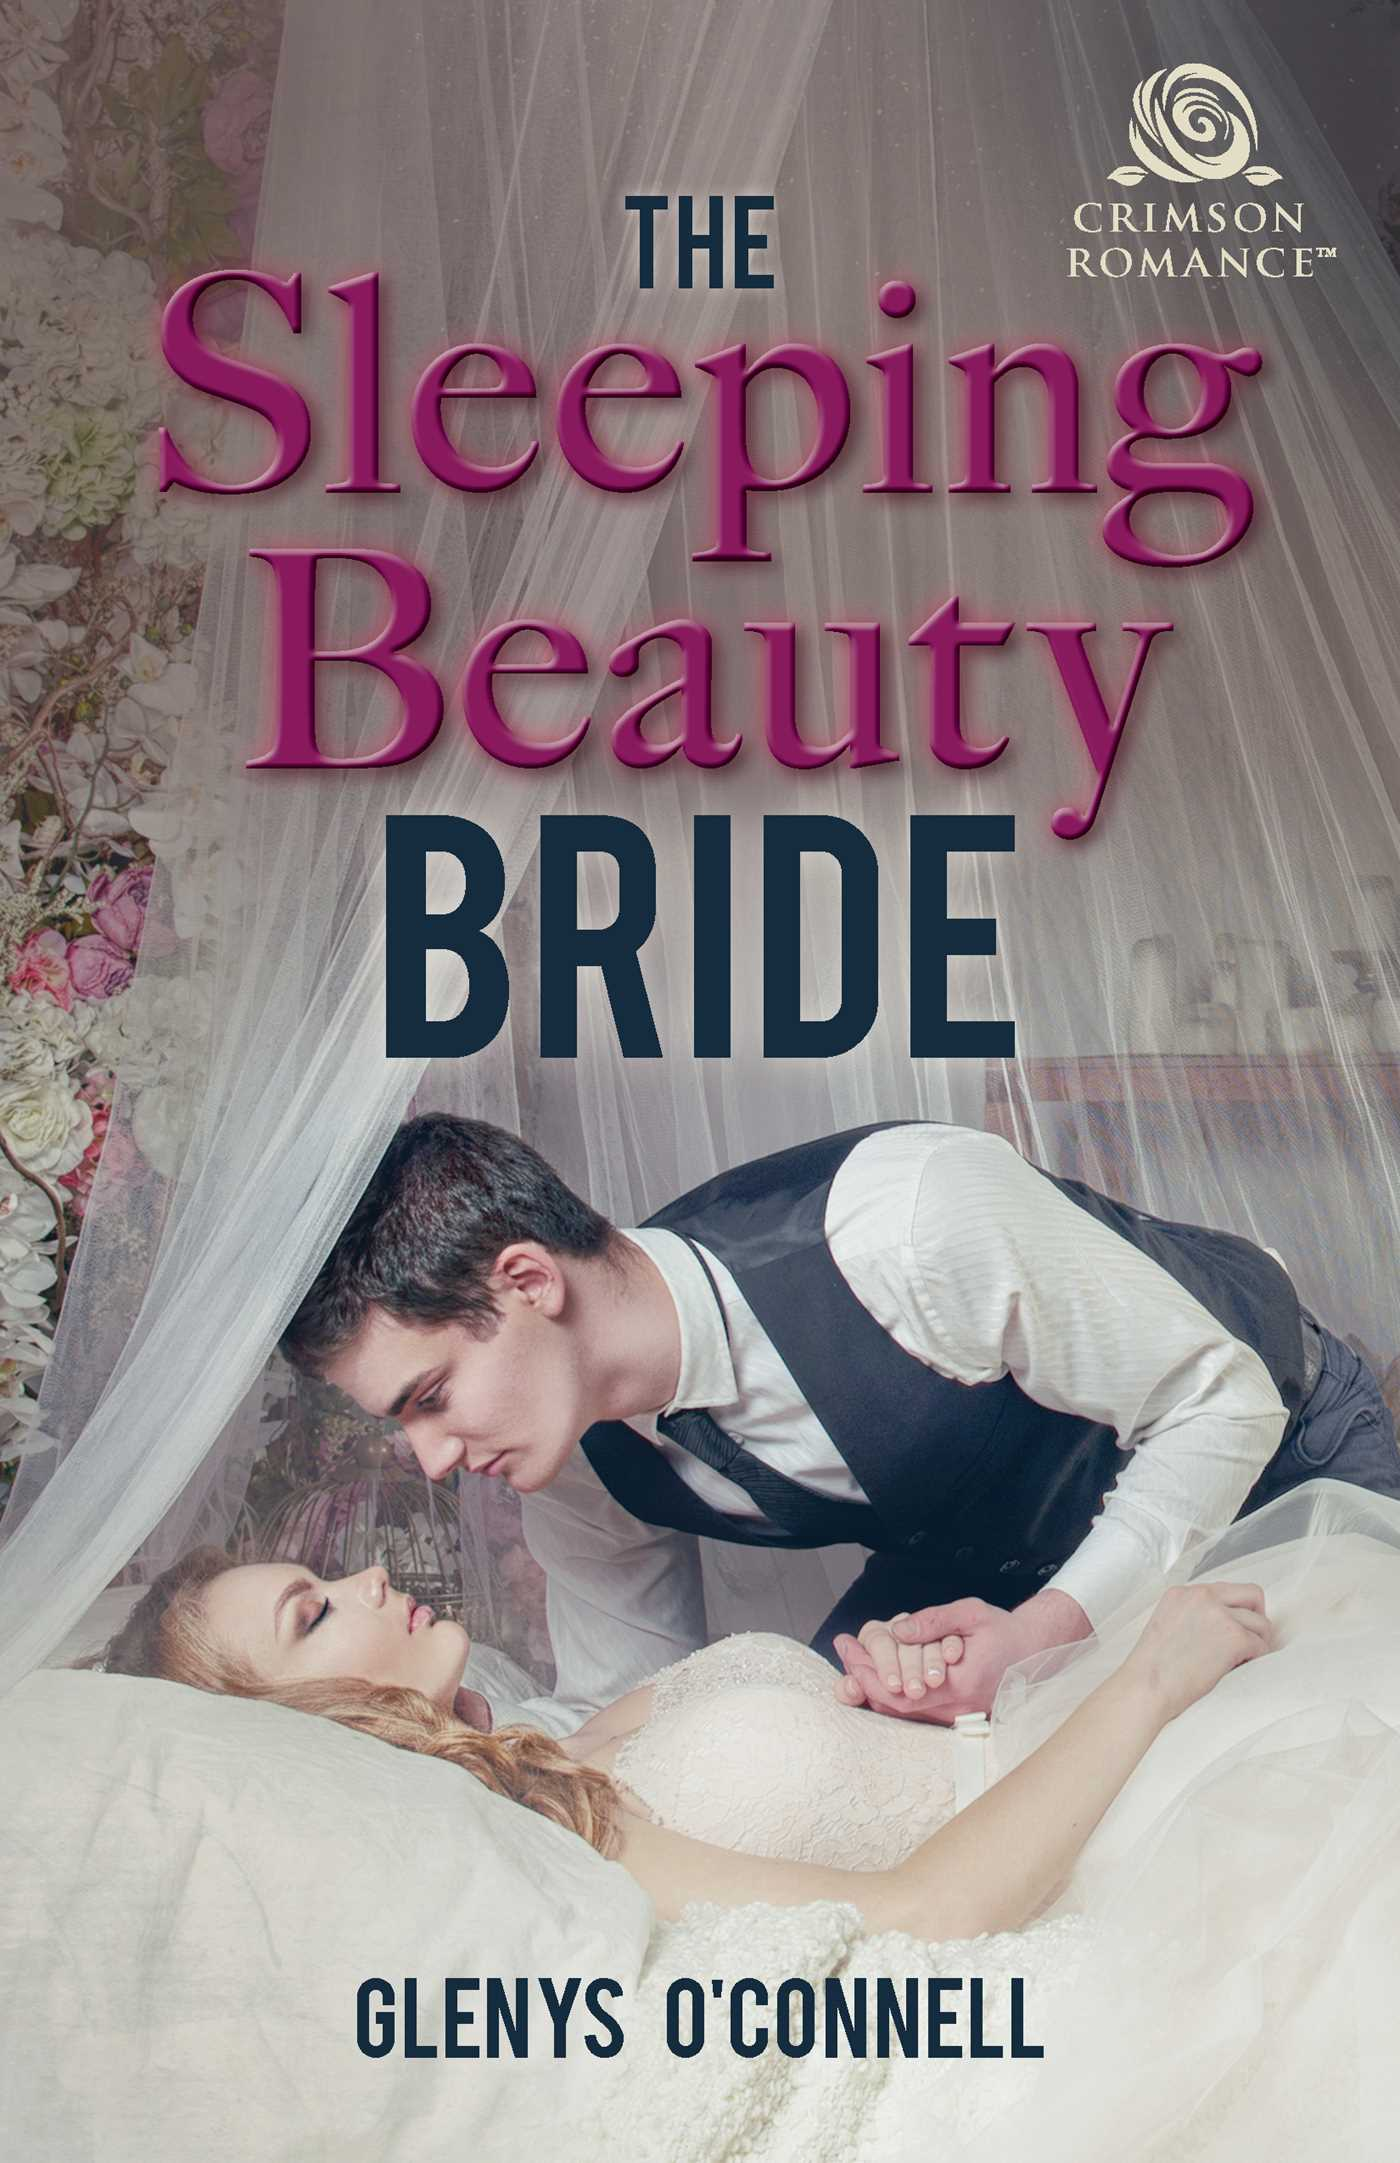 The sleeping beauty bride 9781507208748 hr